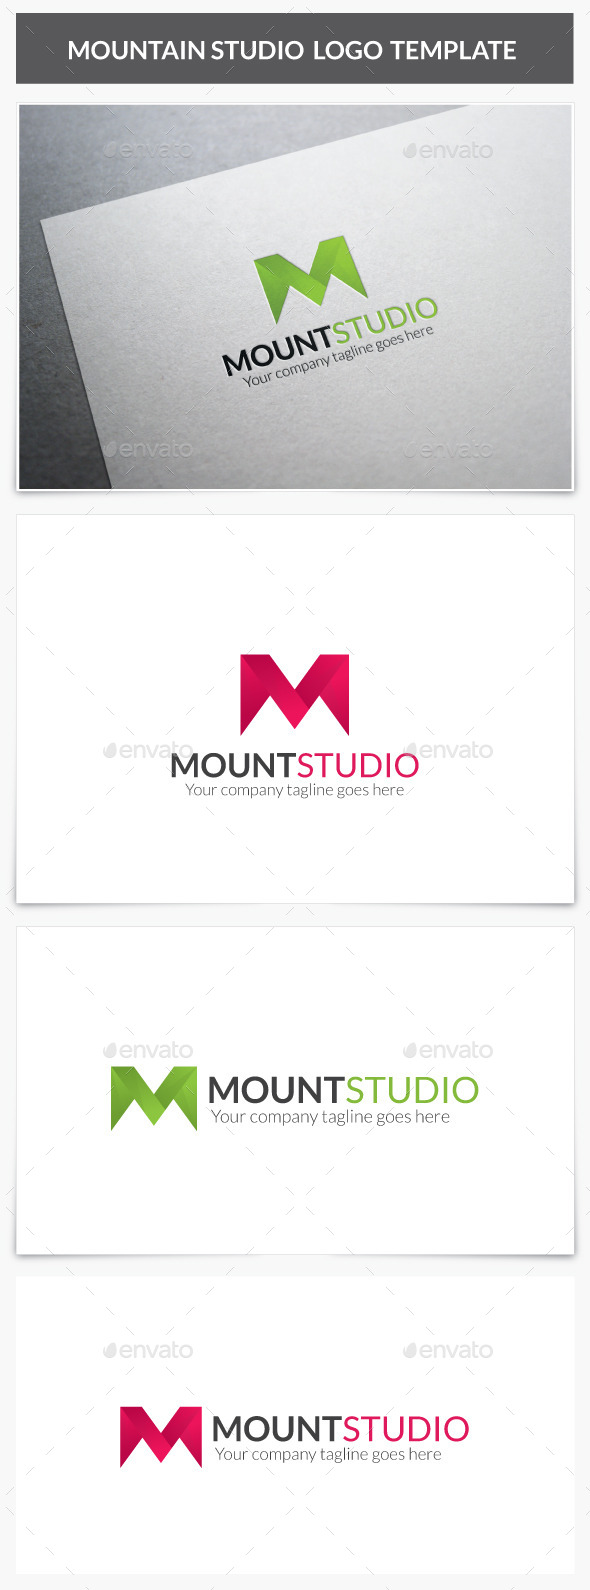 ... mountain studio logo 10041904 photoshop logo template letters